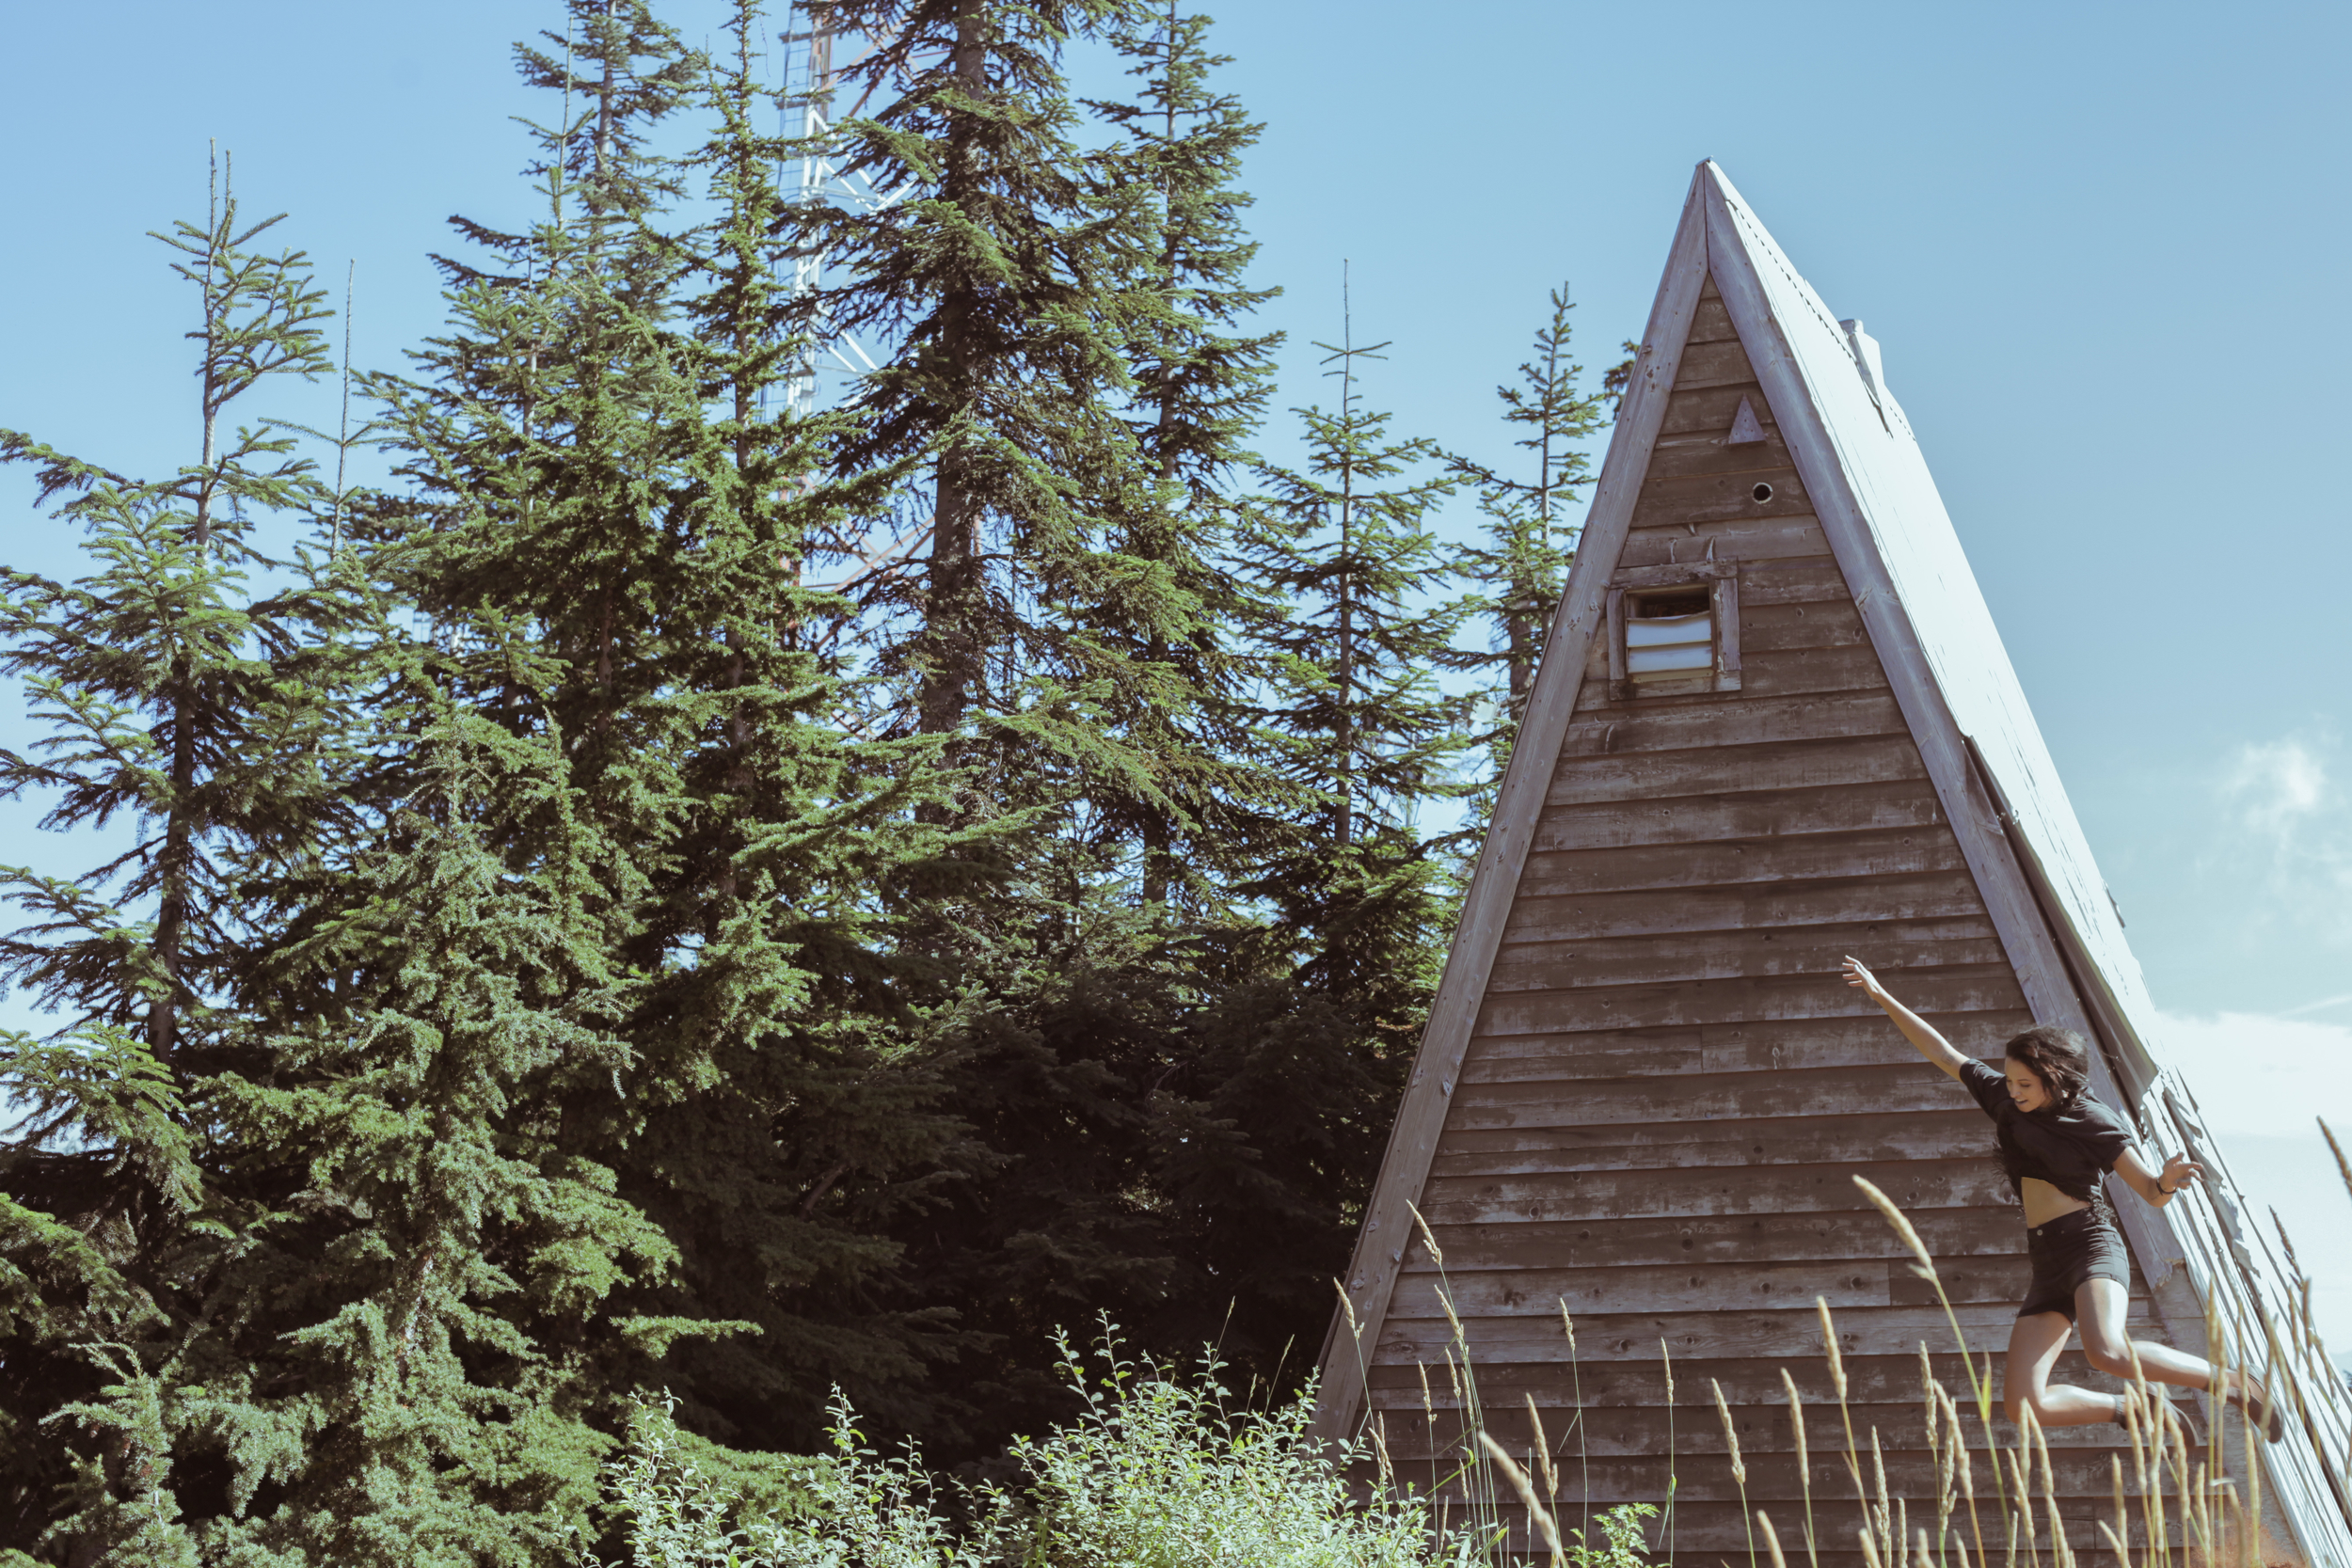 amonth of escape grouse mountain wind turbine pacific northwest vancouver-37.jpg